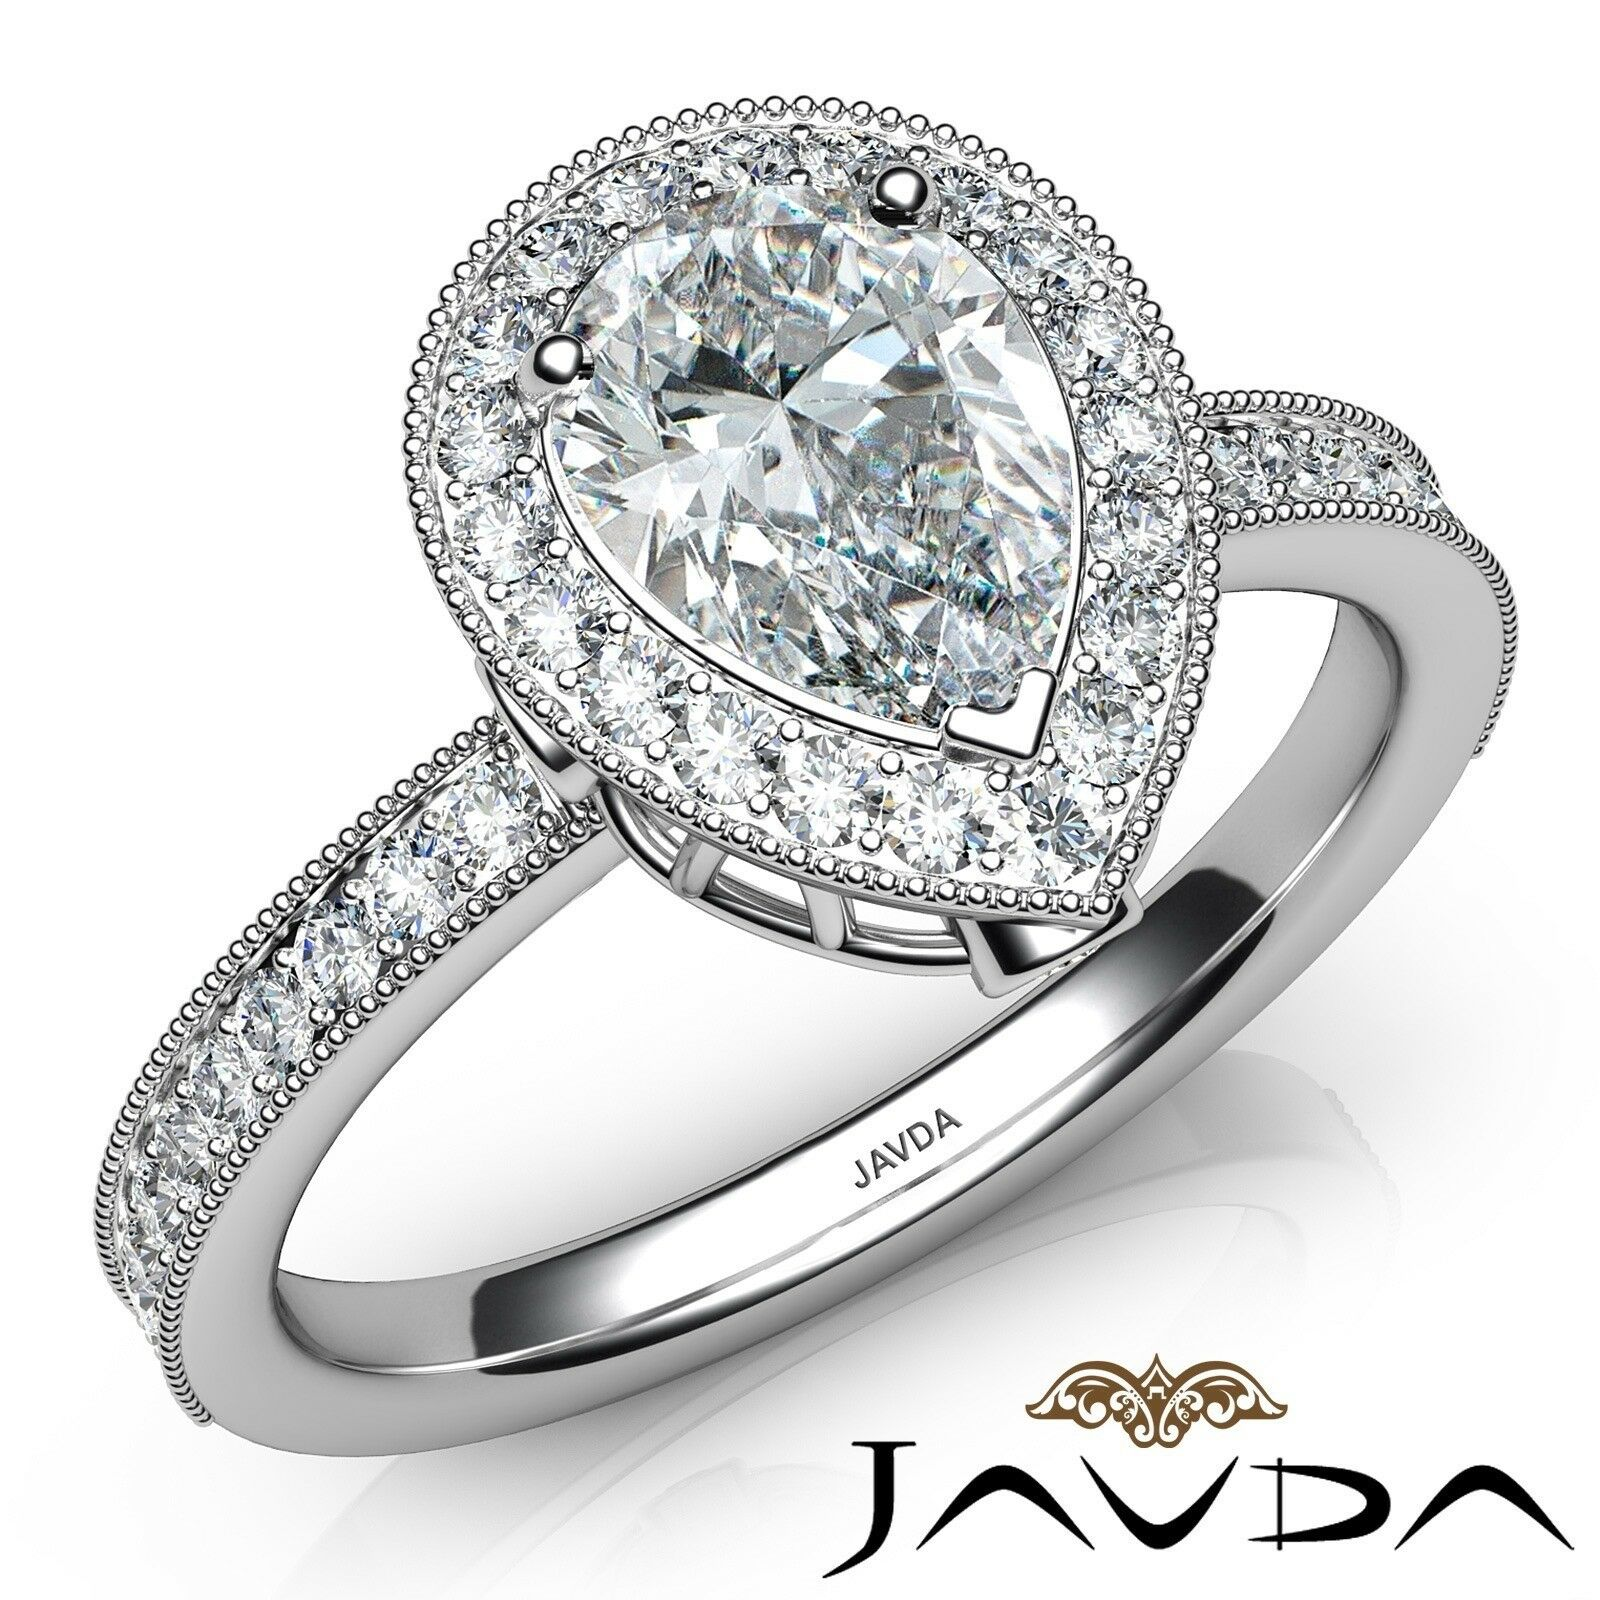 1.17ct Halo Pave Milgrain Edge Pear Diamond Engagement Ring GIA H-SI1 White Gold